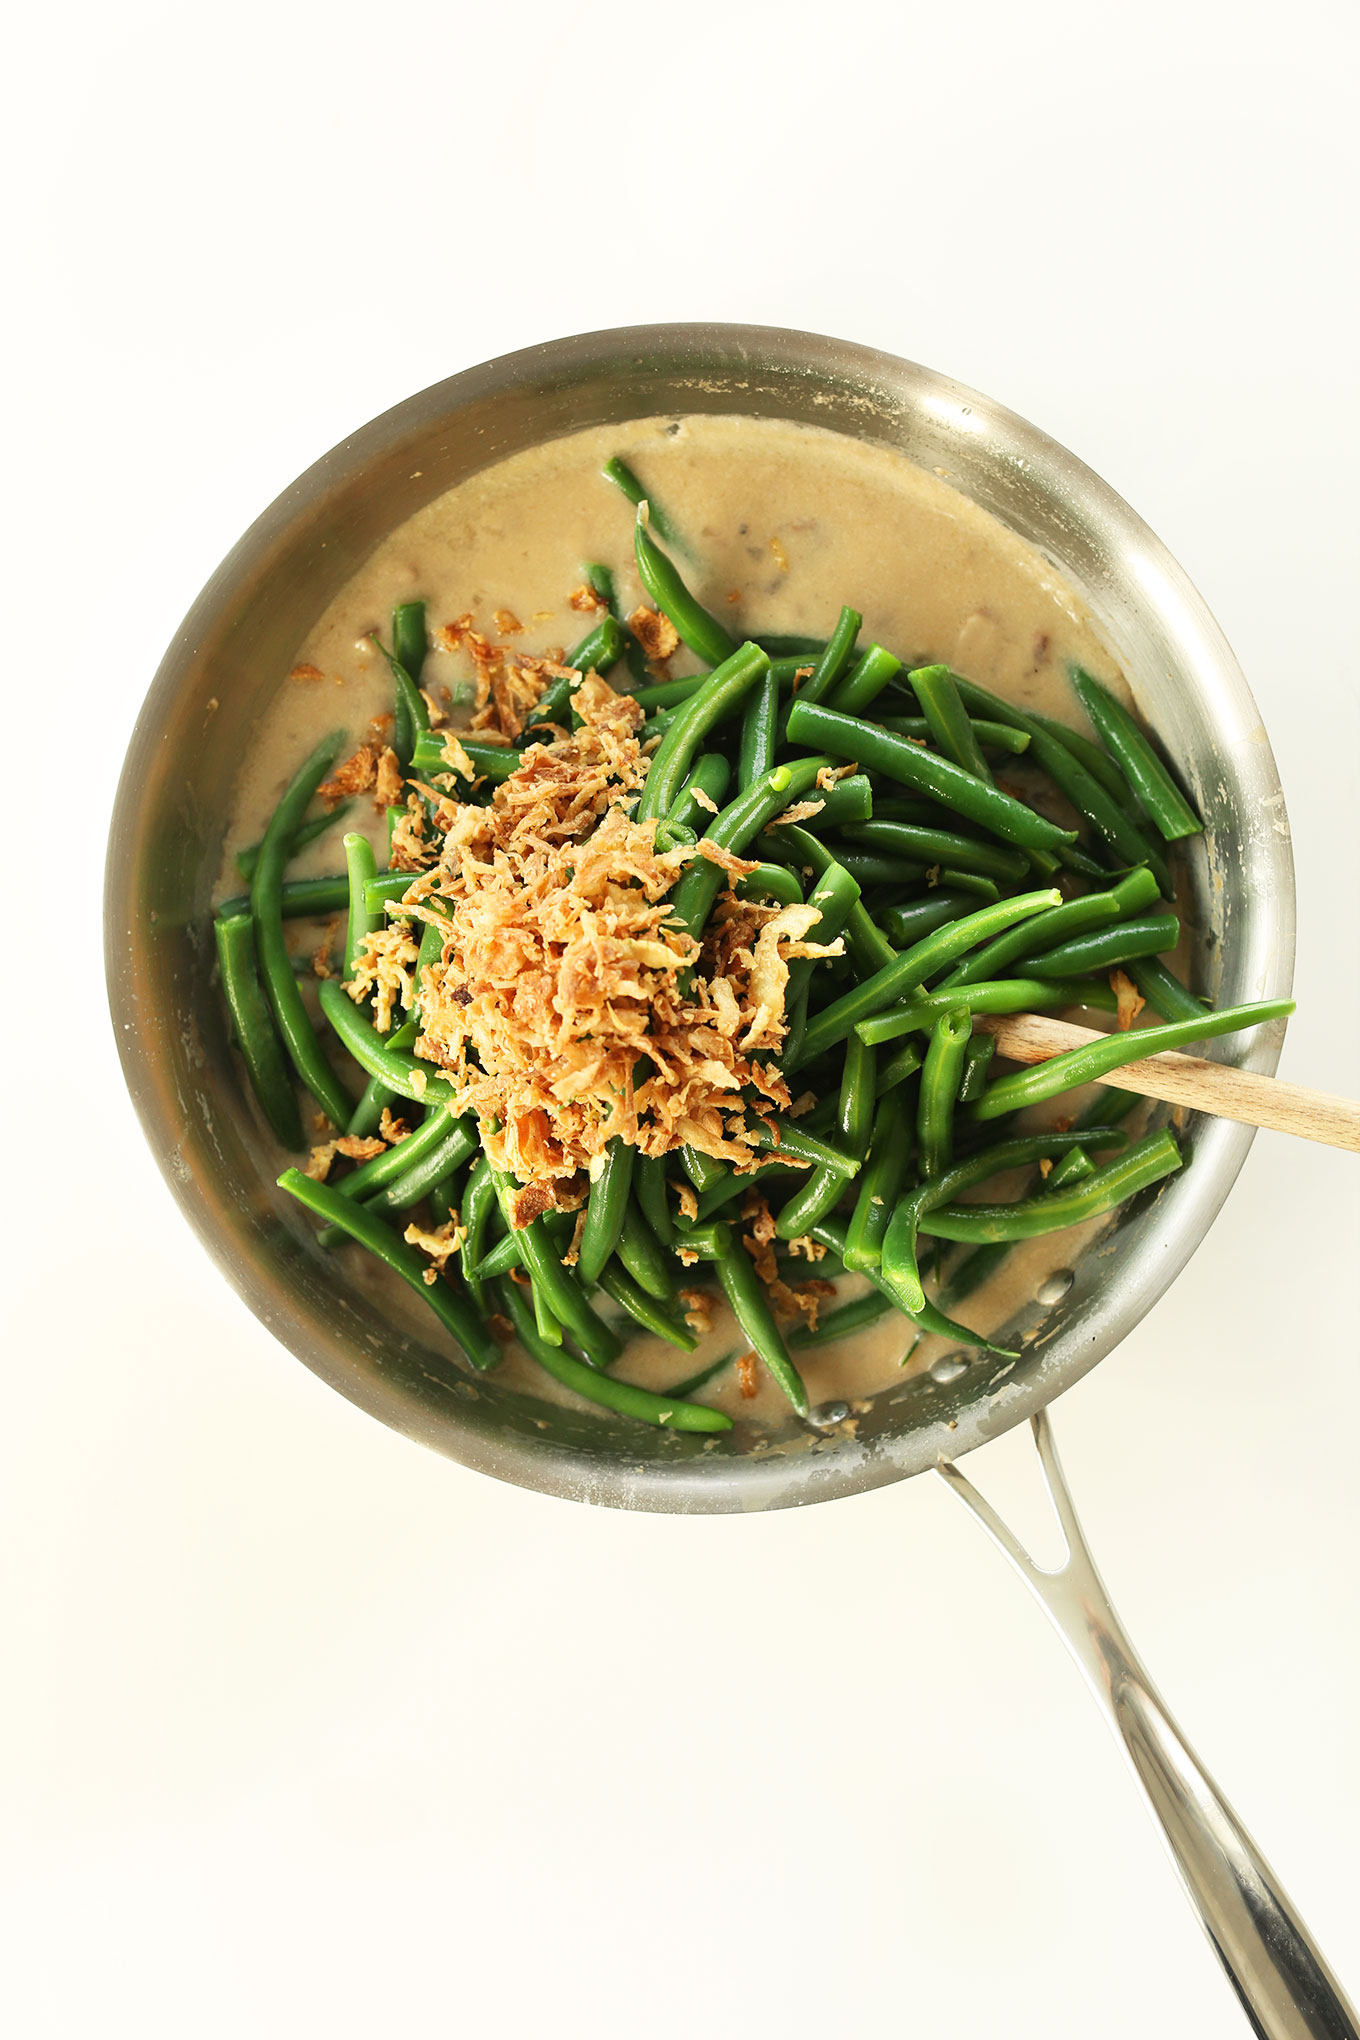 Using a wooden spoon to stir together our Easy Green Bean Casserole recipe